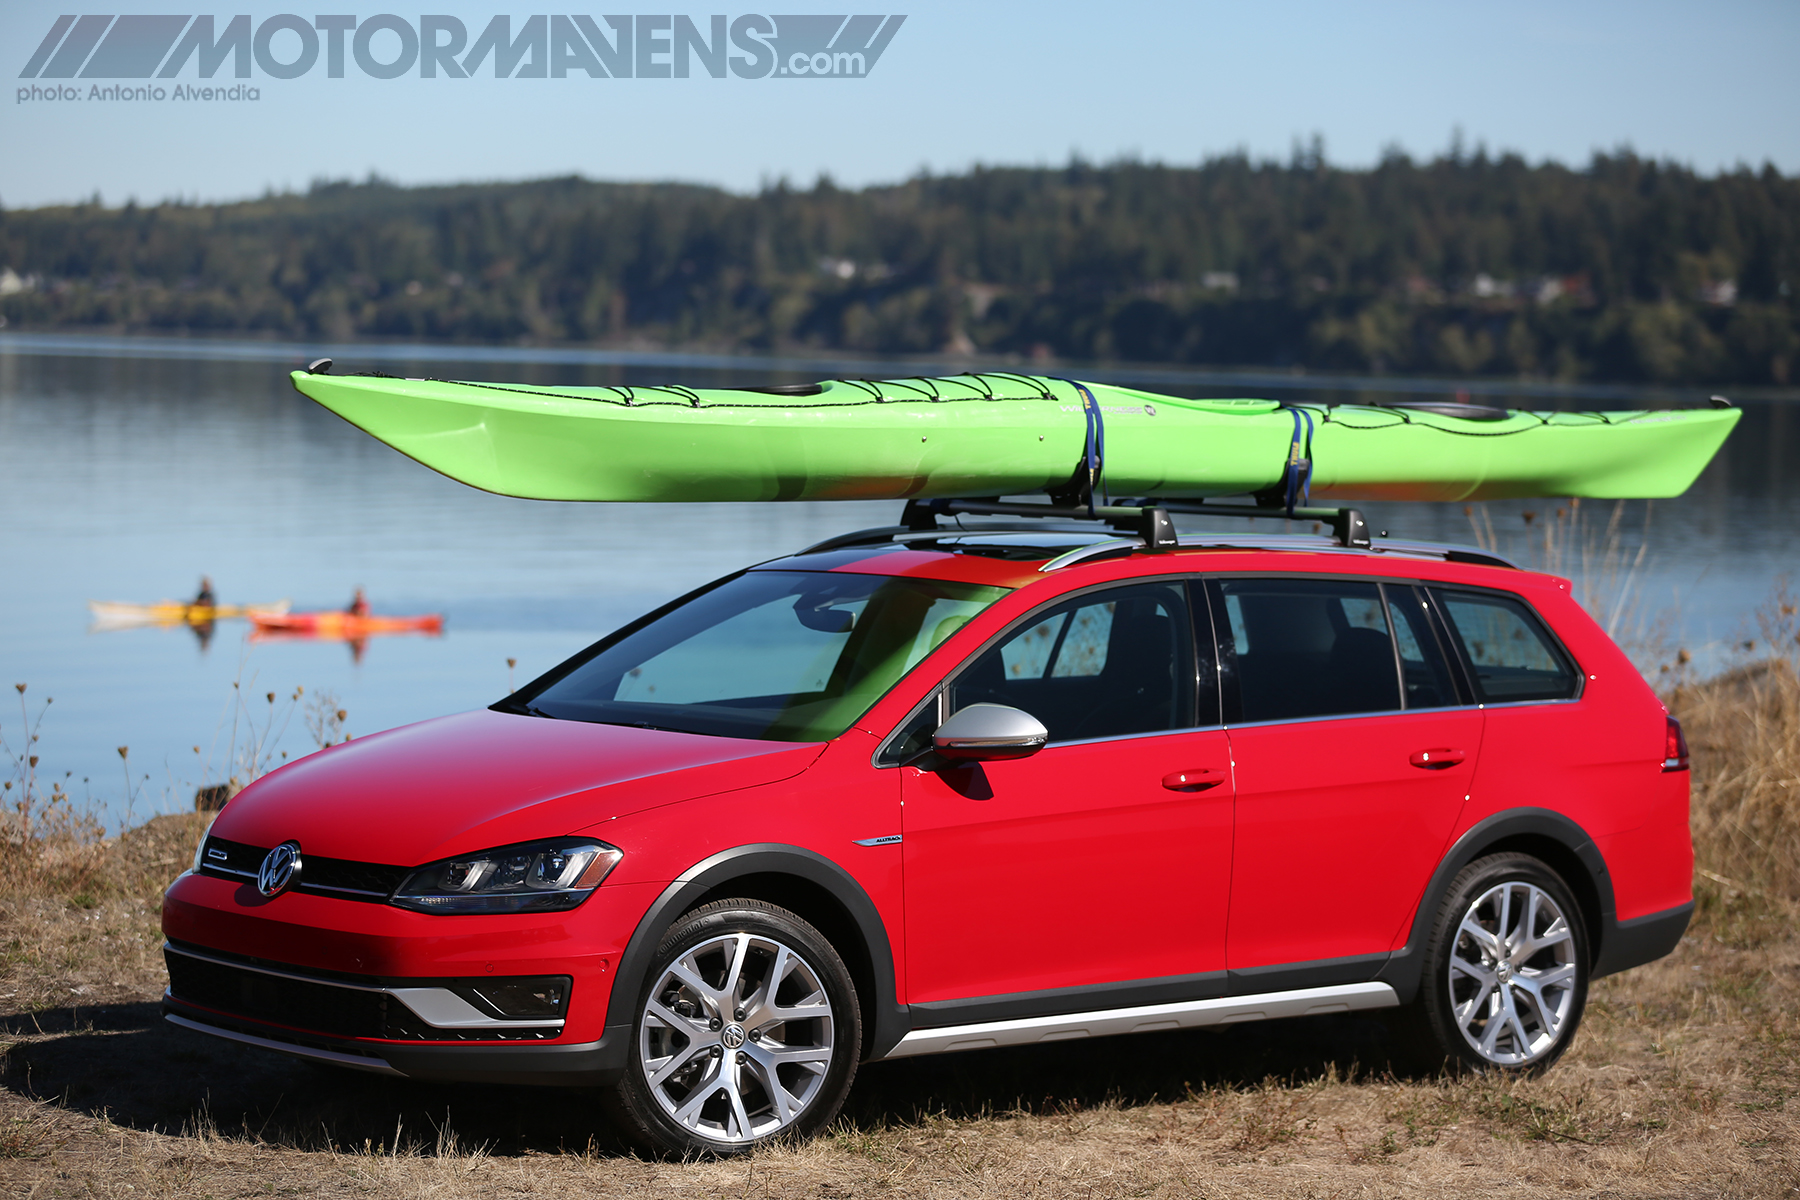 Coole Sportwagen Roadtrip Turbocharged Vw Golf Alltrack Adventures Motormavens